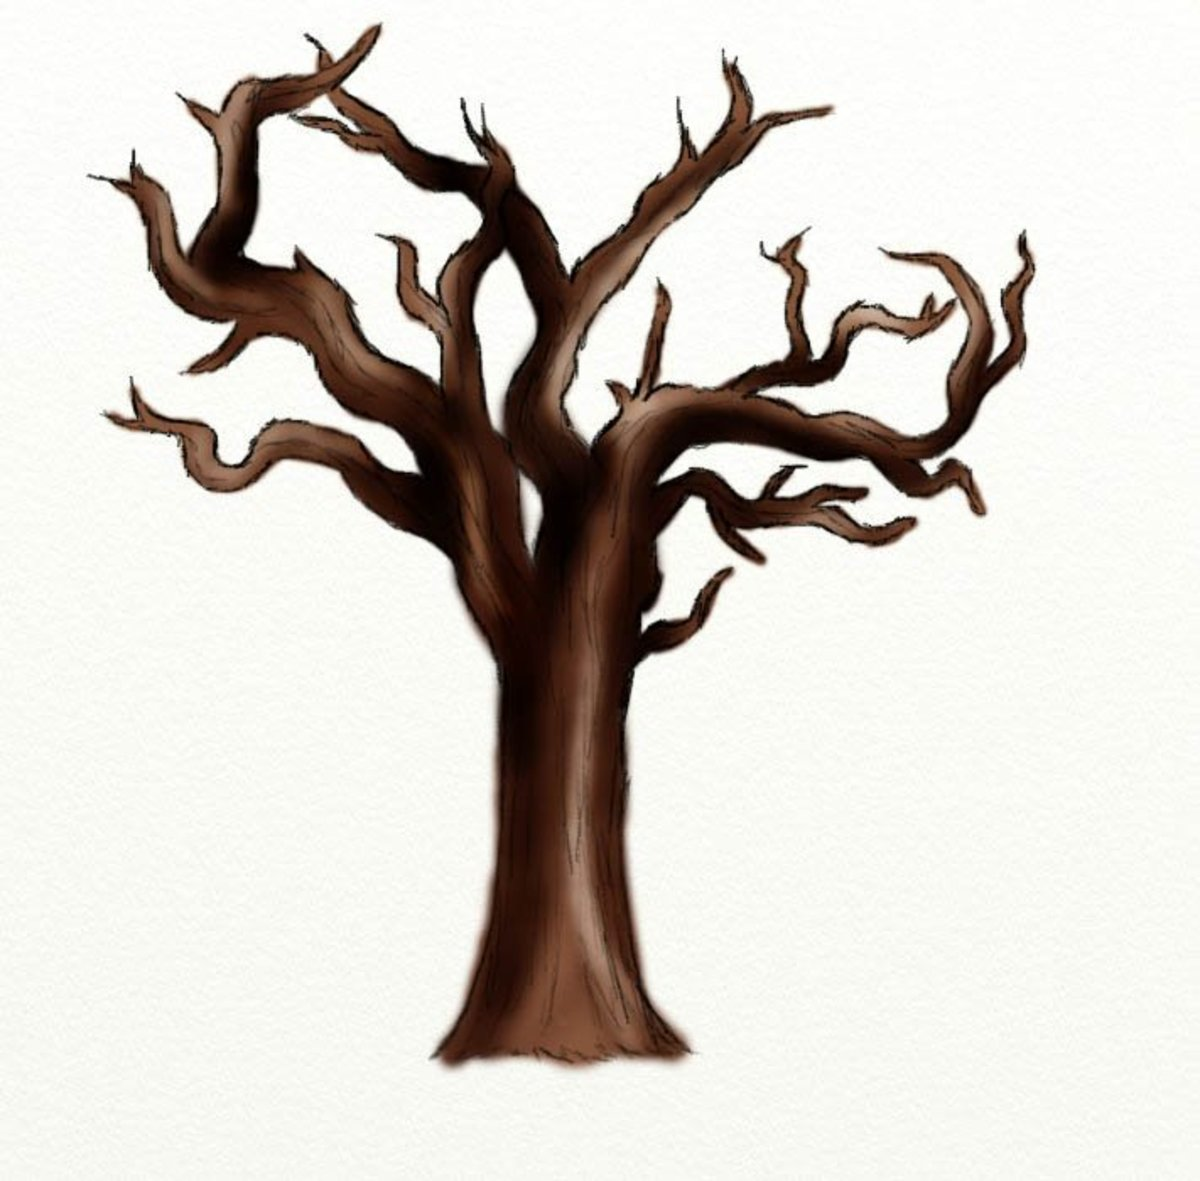 How to Draw a Dead Tree | FeltMagnet